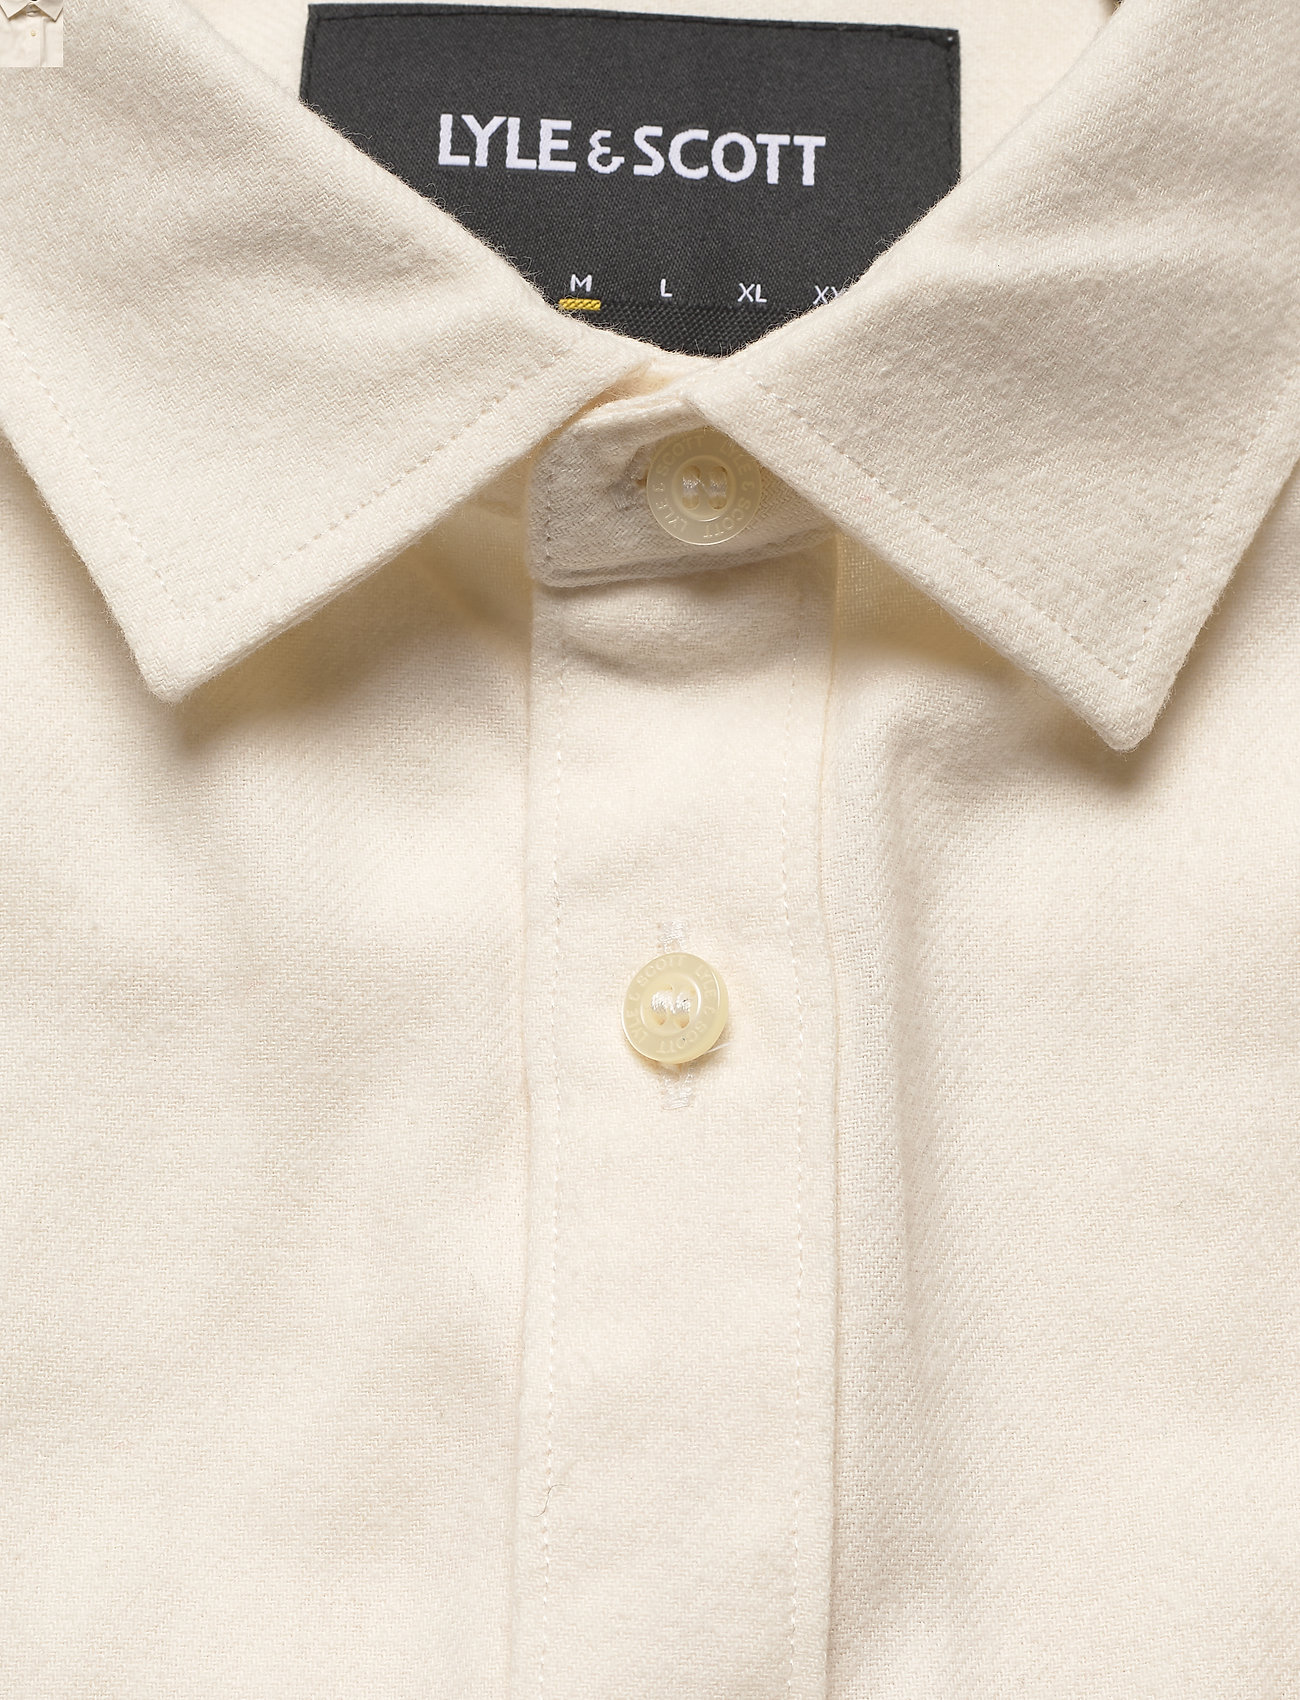 Lyle & Scott Brushed Twill Shirt - Skjorter VANILLA ICE - Menn Klær